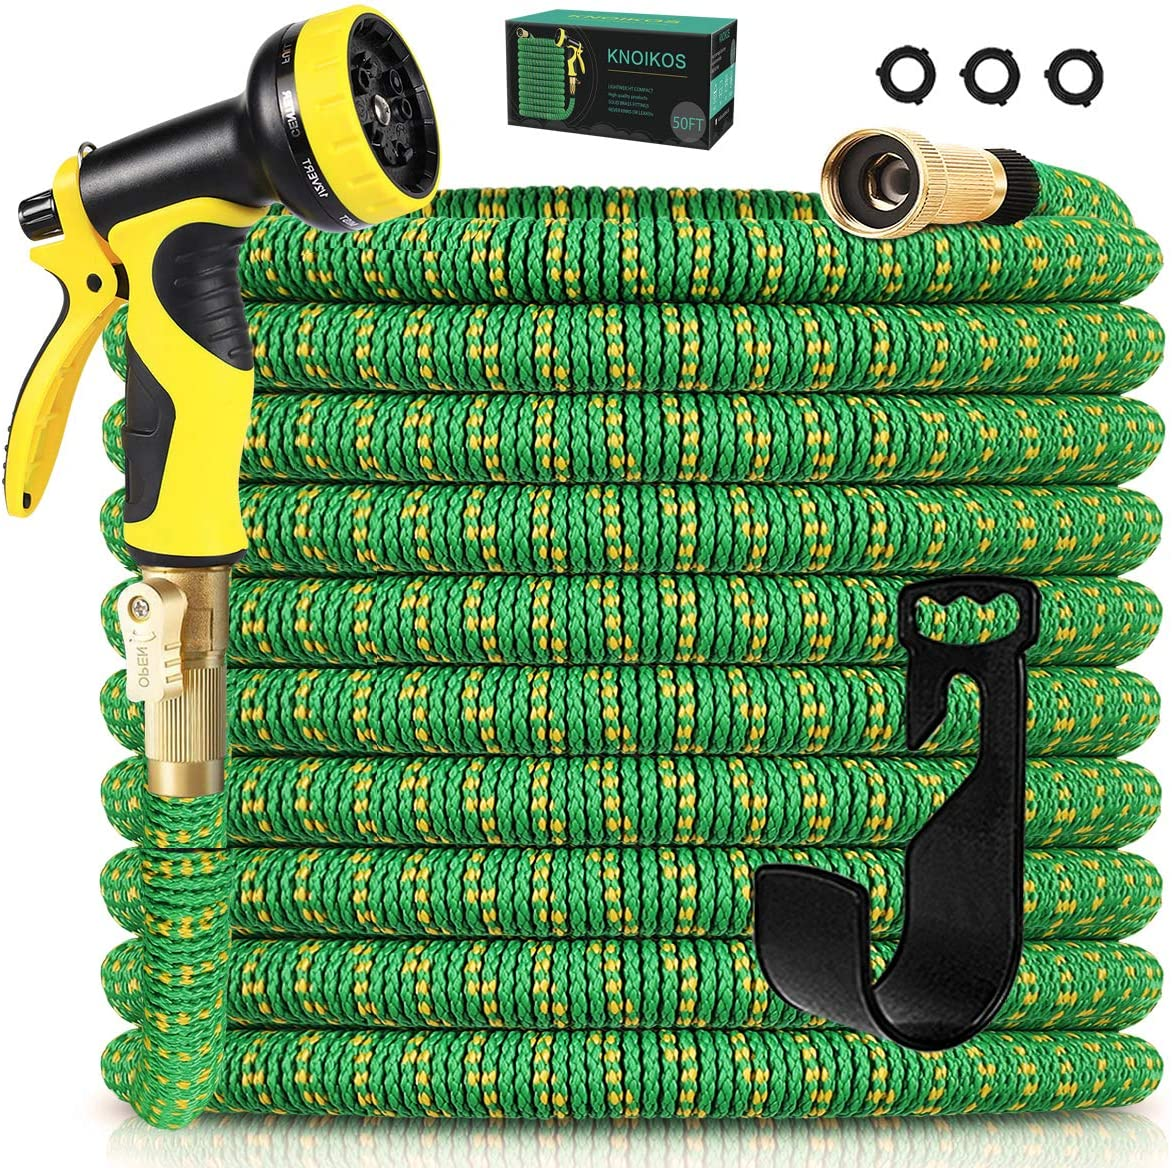 Knoikos Expandable Garden Hose 50ft - Expanding Water Hose with 10 Function High Pressure Nozzle, Lightweight Water Garden Hose Solid Brass Connectors & Durable 3-Layers Latex